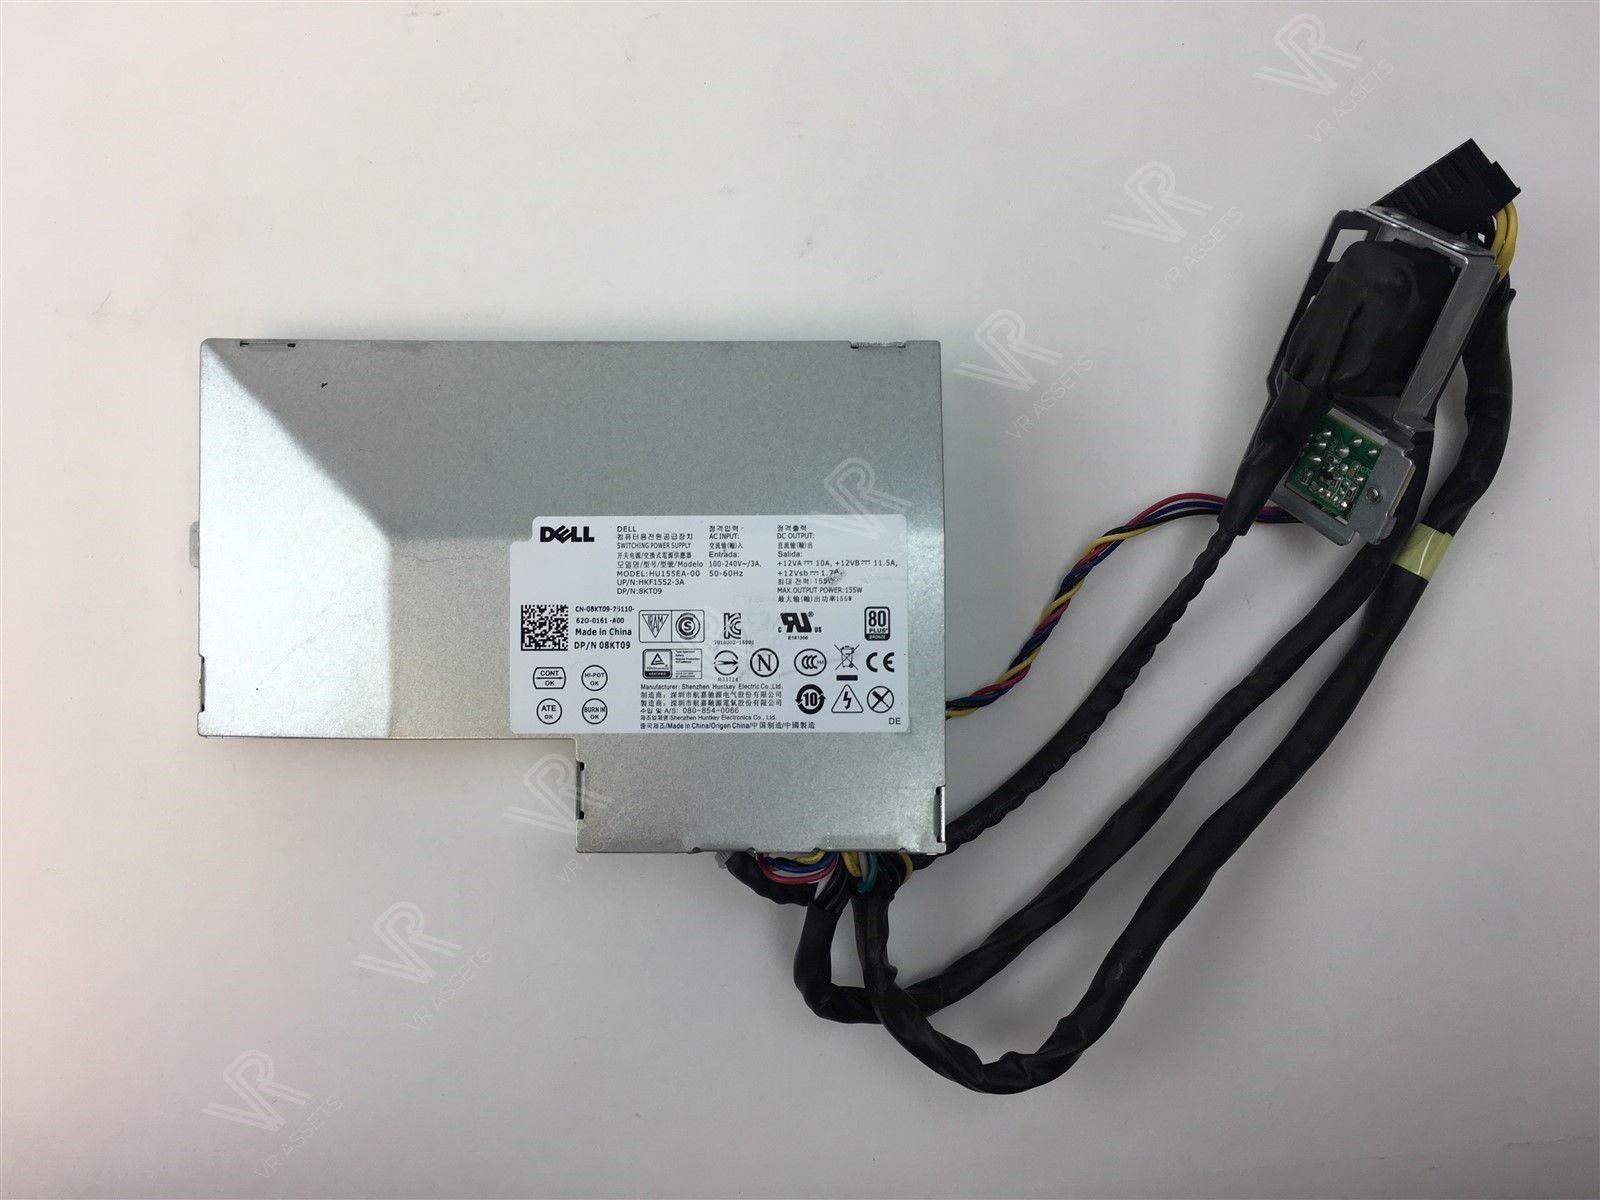 Genuine Dell Optiplex 3440 7440 AIO 155W HU155EA-00 Power Supply 8KT09 08KT09